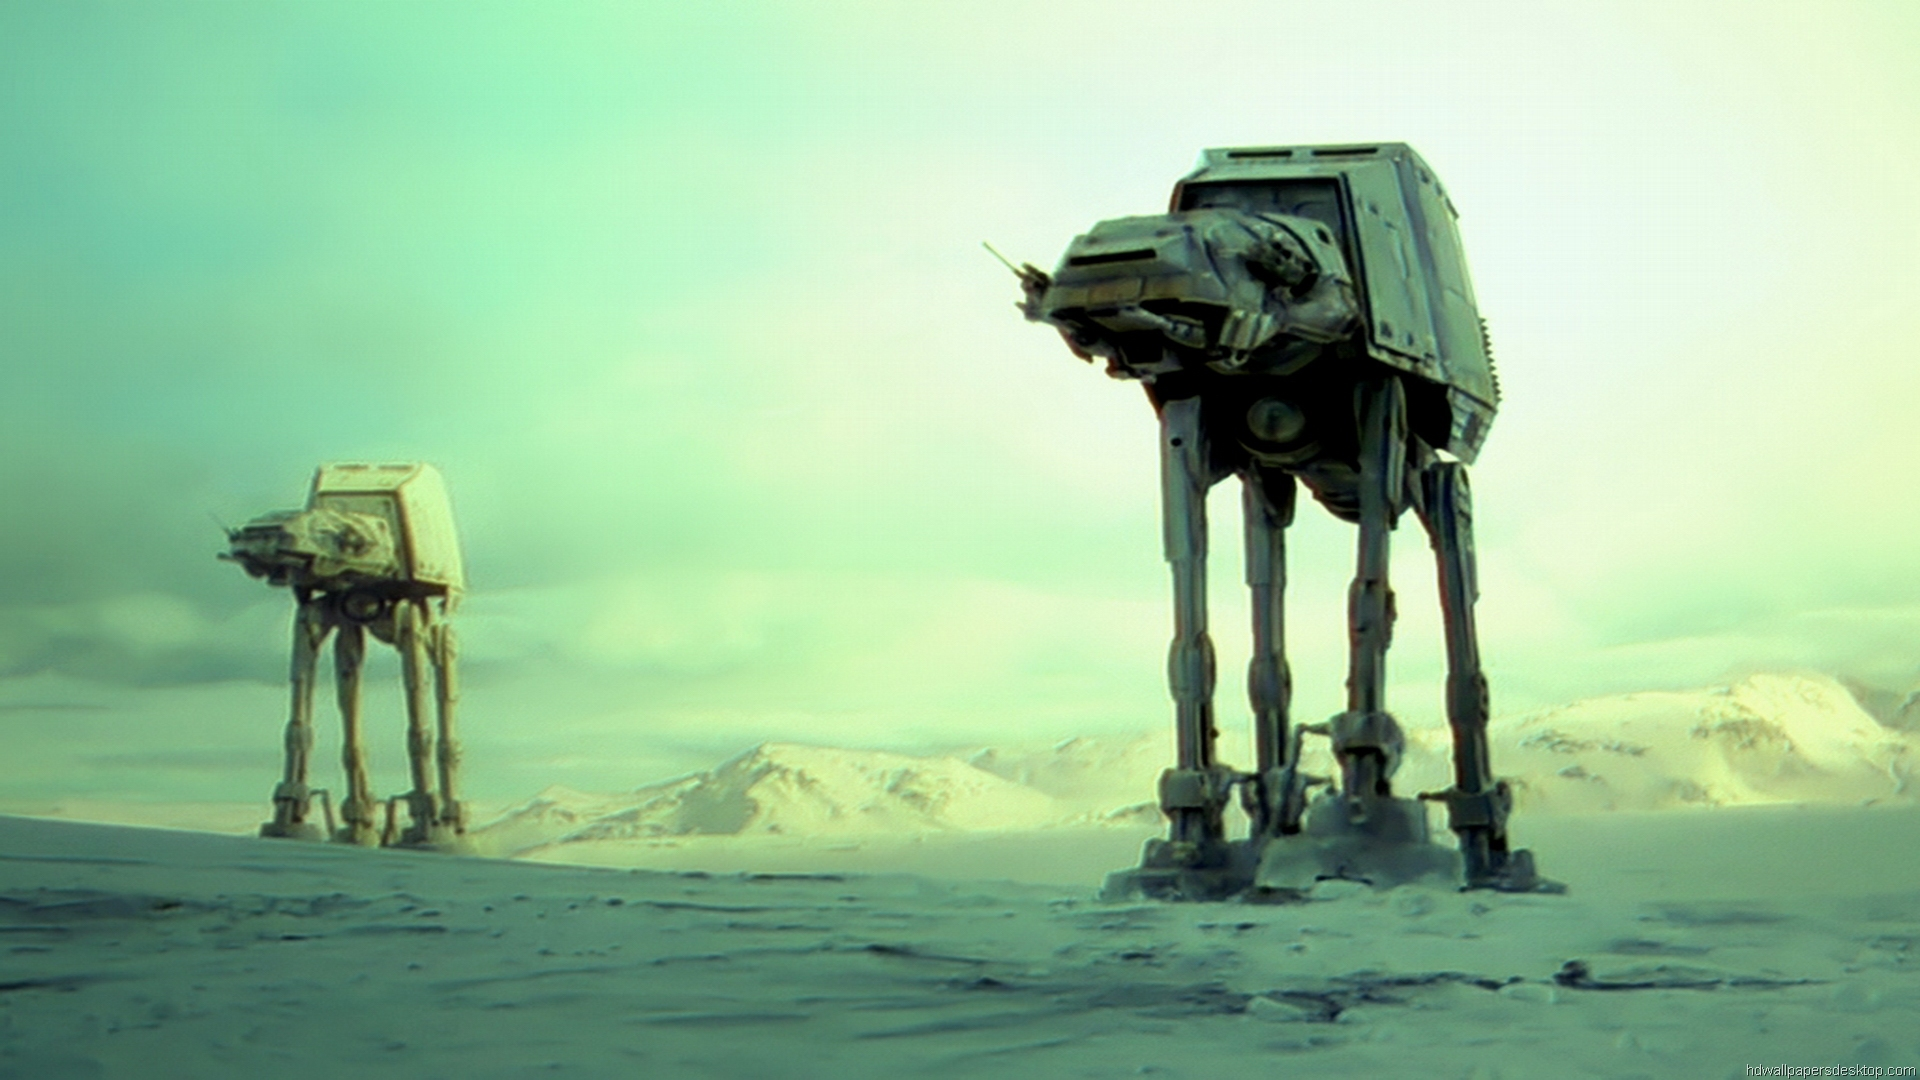 Star Wars Full HD Wallpaper 1080p Desktop starwars v imperial 1920x1080